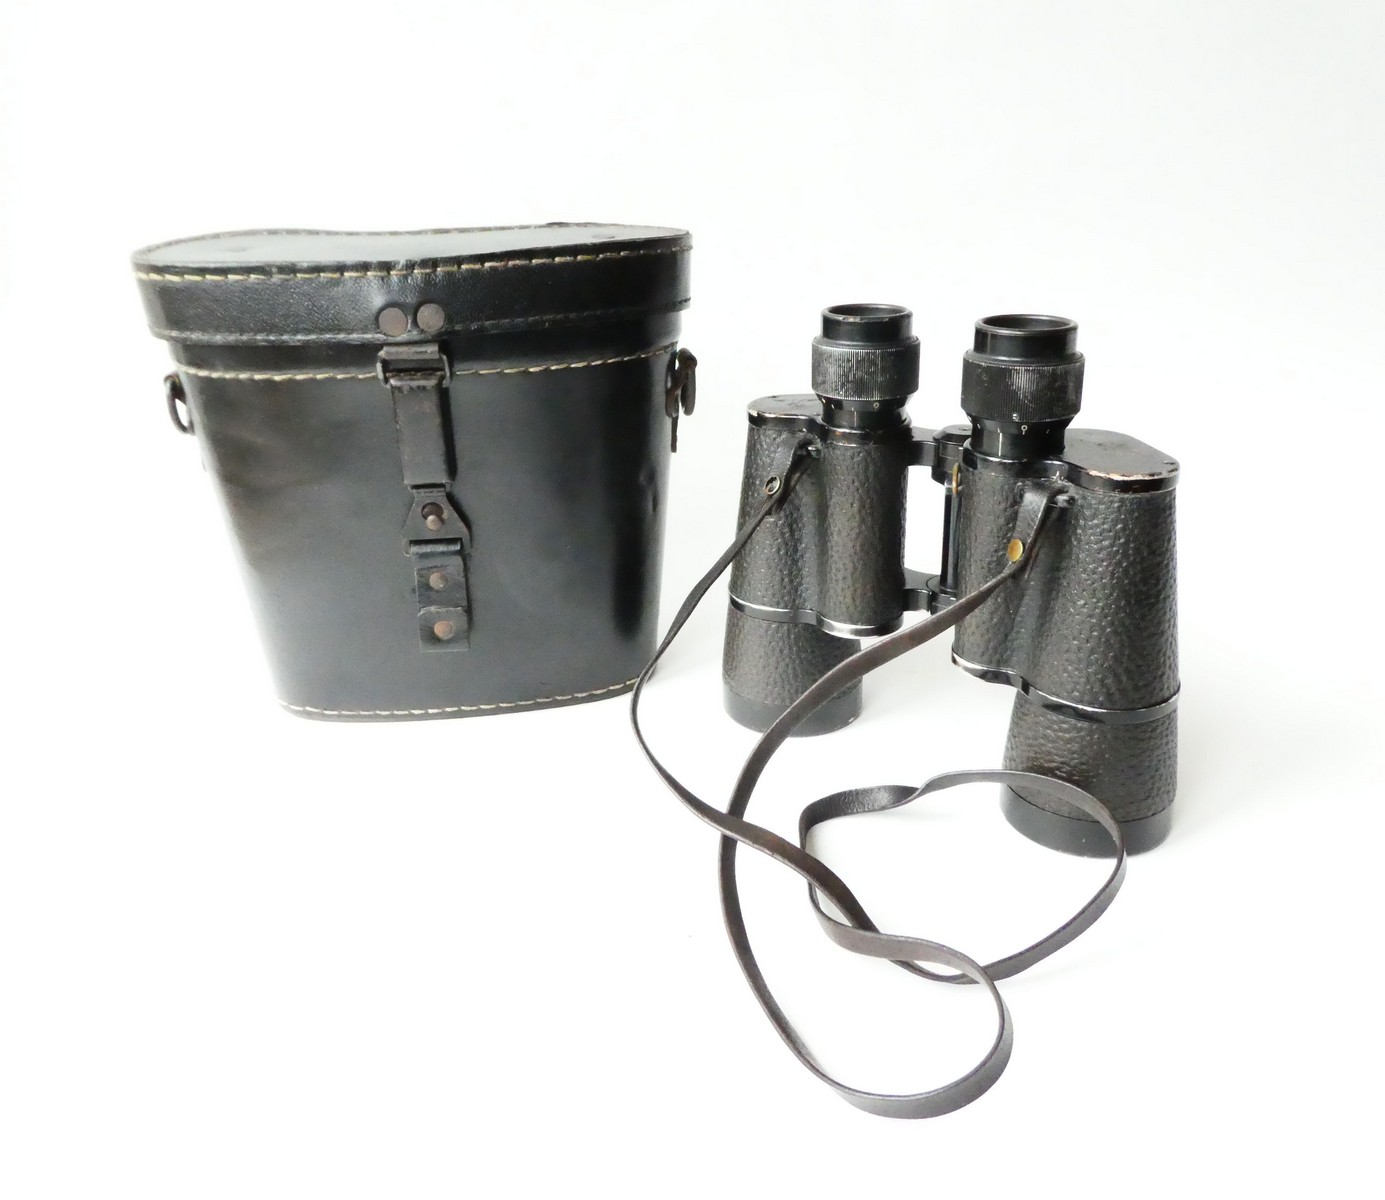 WW 2. KRIEGSMARINE BINOCULAR BY CARL ZEISS IN LEATHER CASE